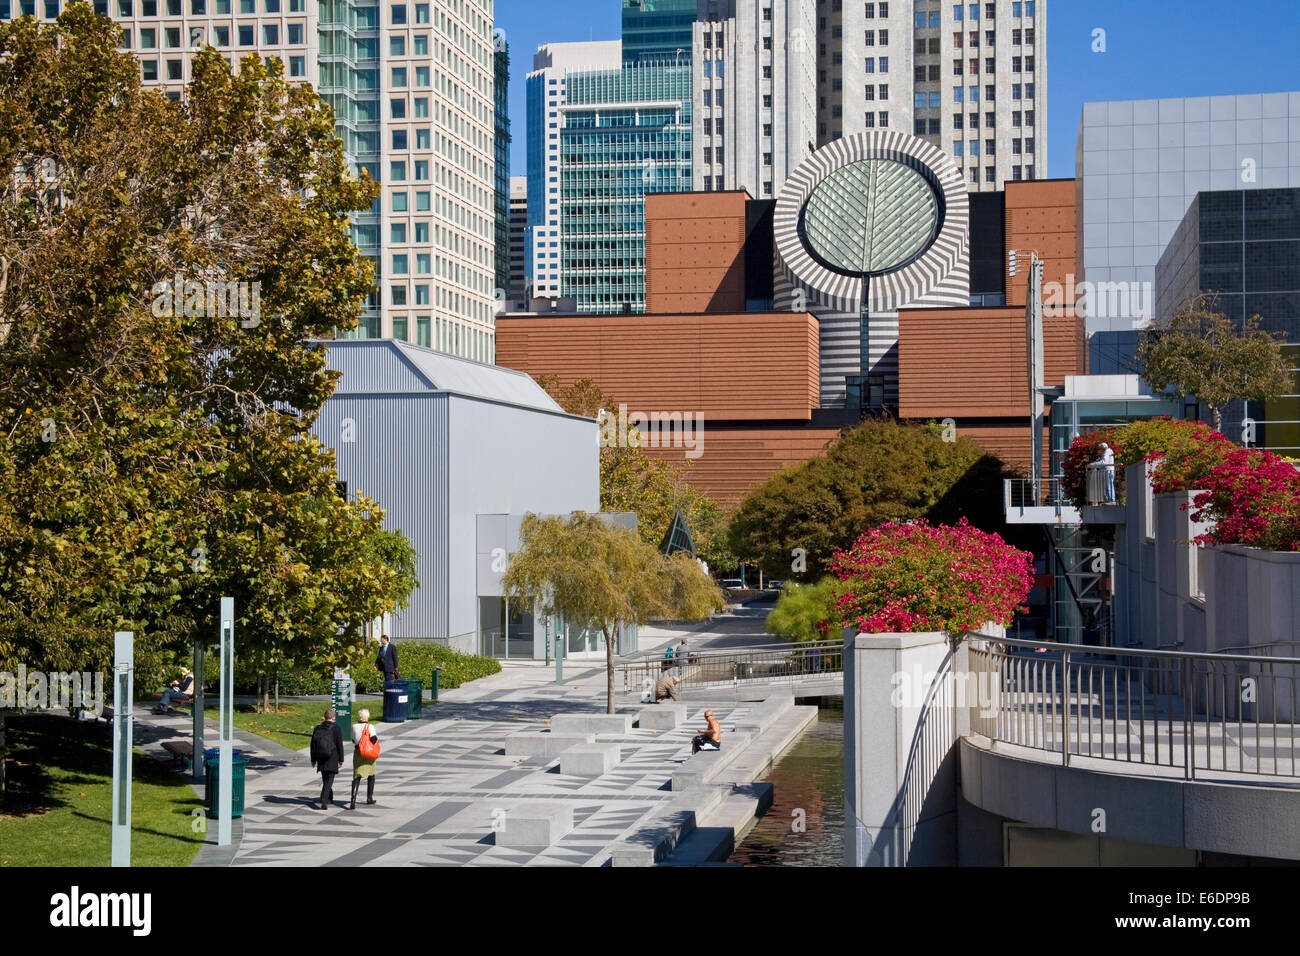 San francisco museum of modern art yerba buena gardens for Contemporary art museum san francisco